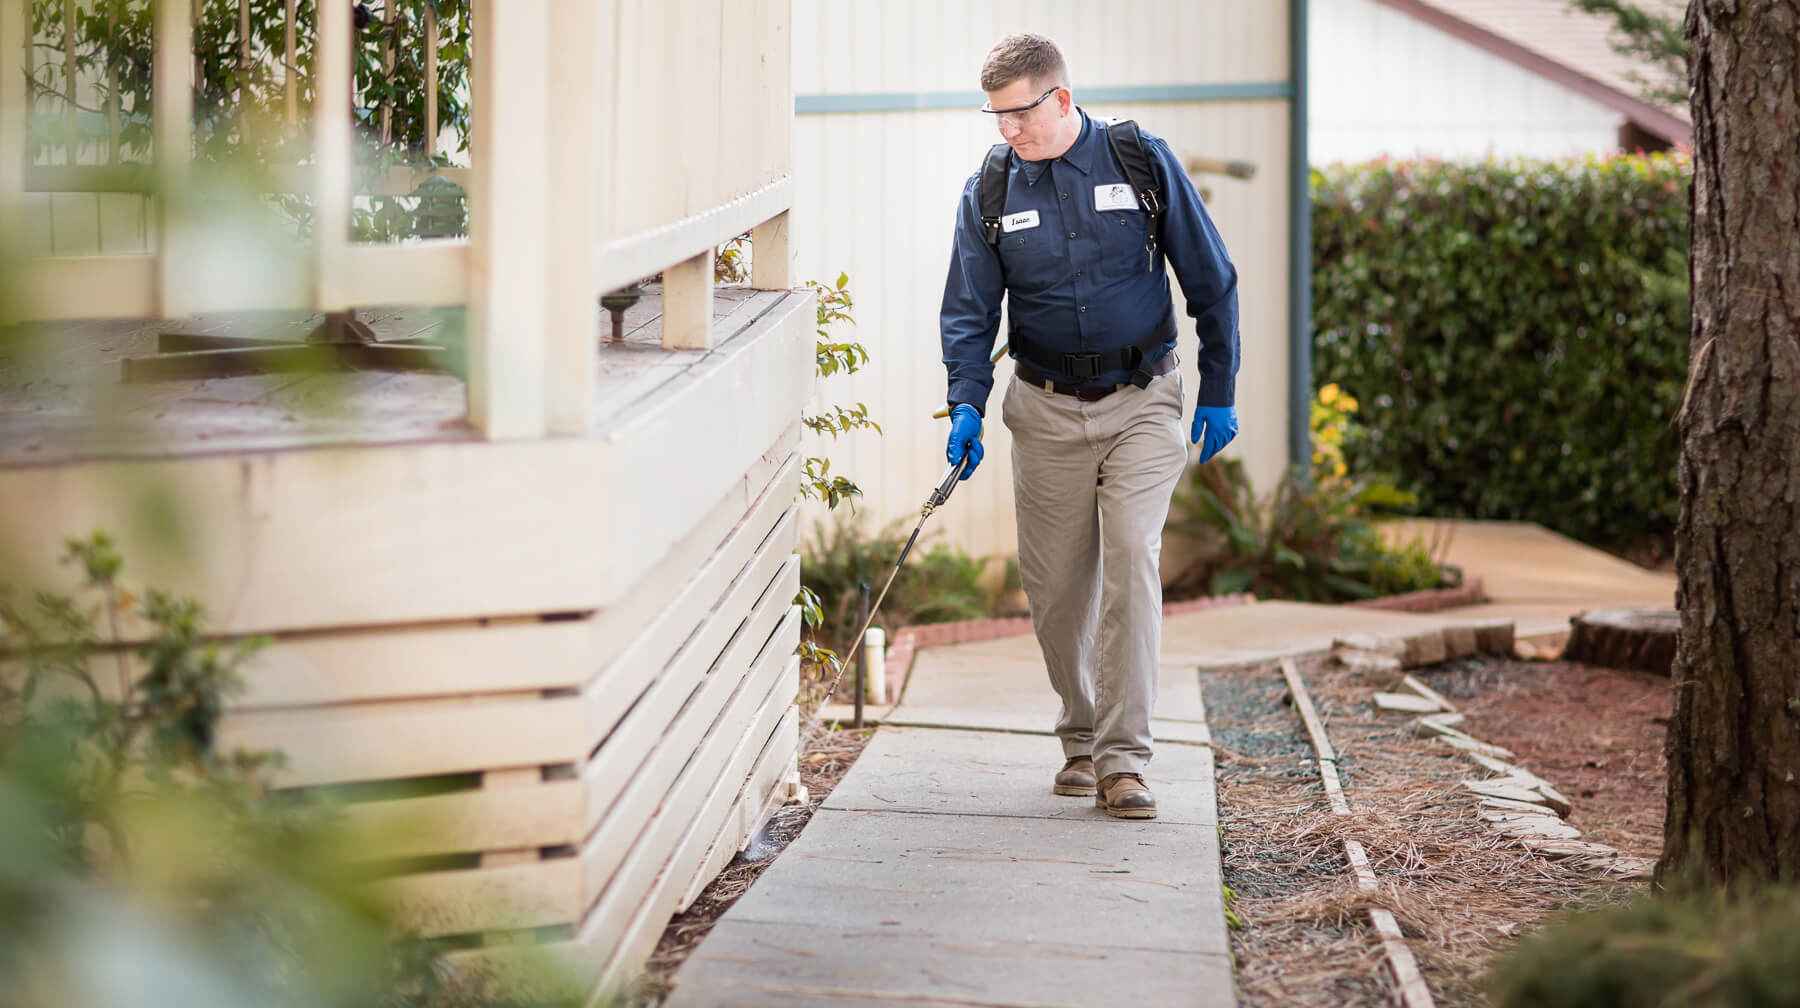 Opt For Finding The Right Gold Coast Pest Control Services